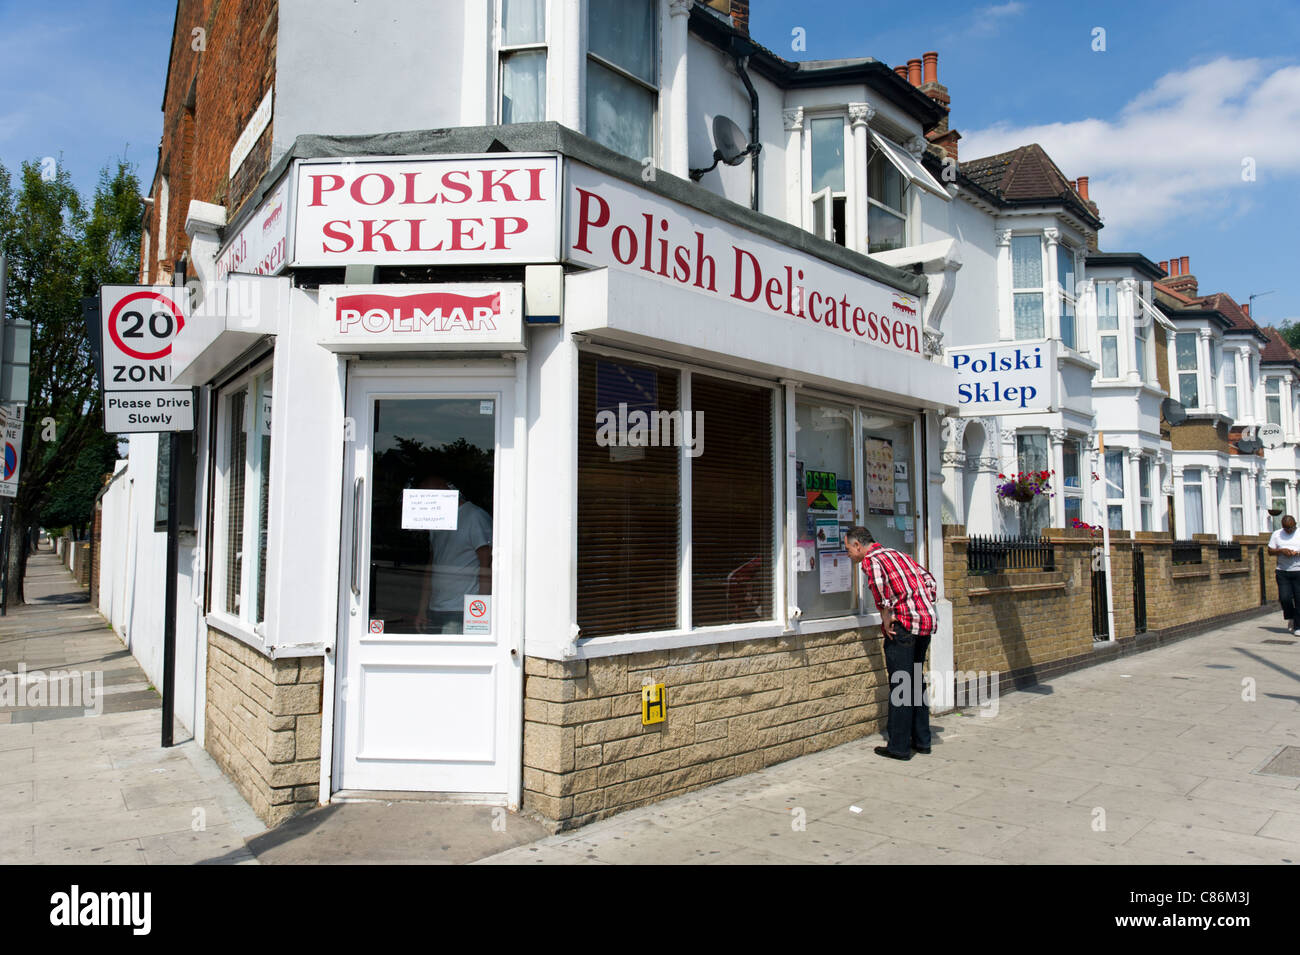 Polish shop in South Tottenham, London, UK - Stock Image